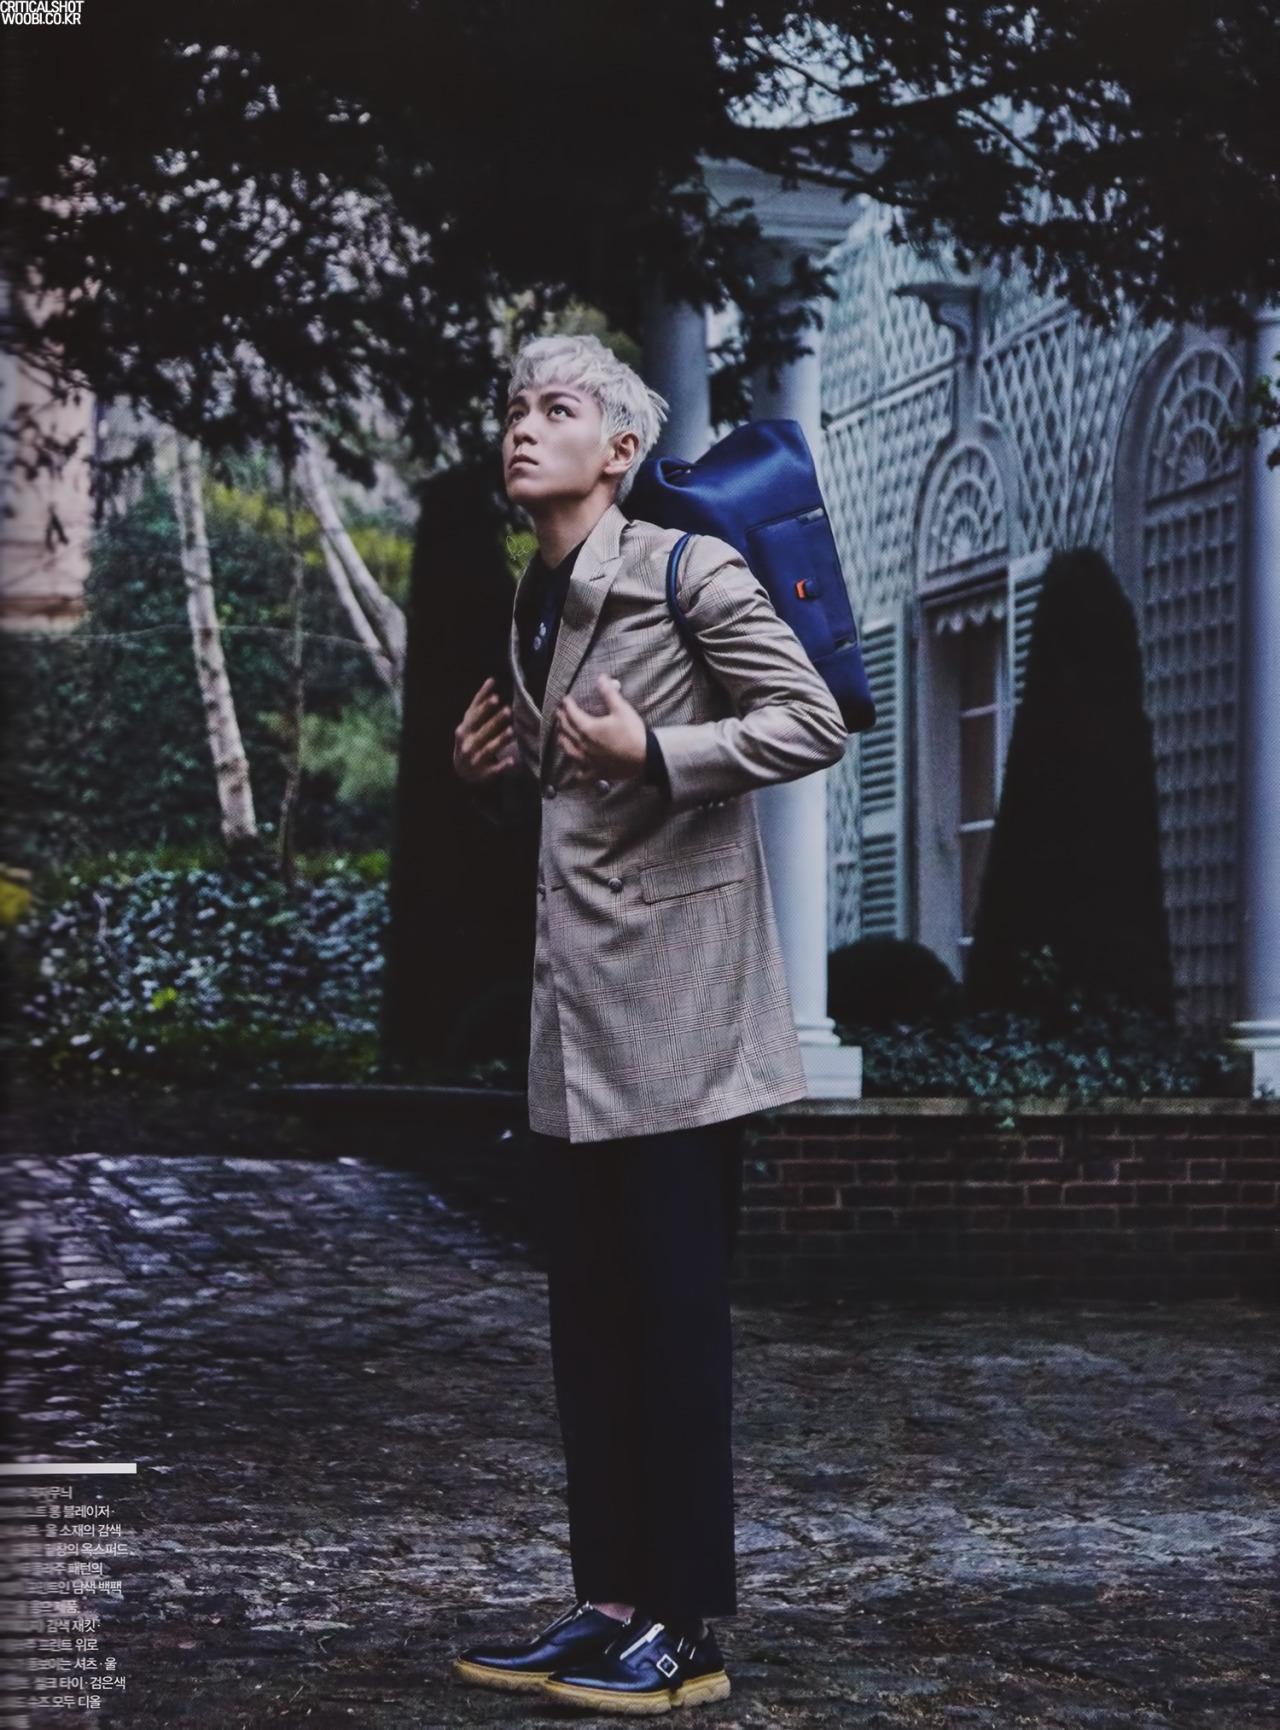 TOP Arena Homme March 2016 scans by CriticalShot (2).png